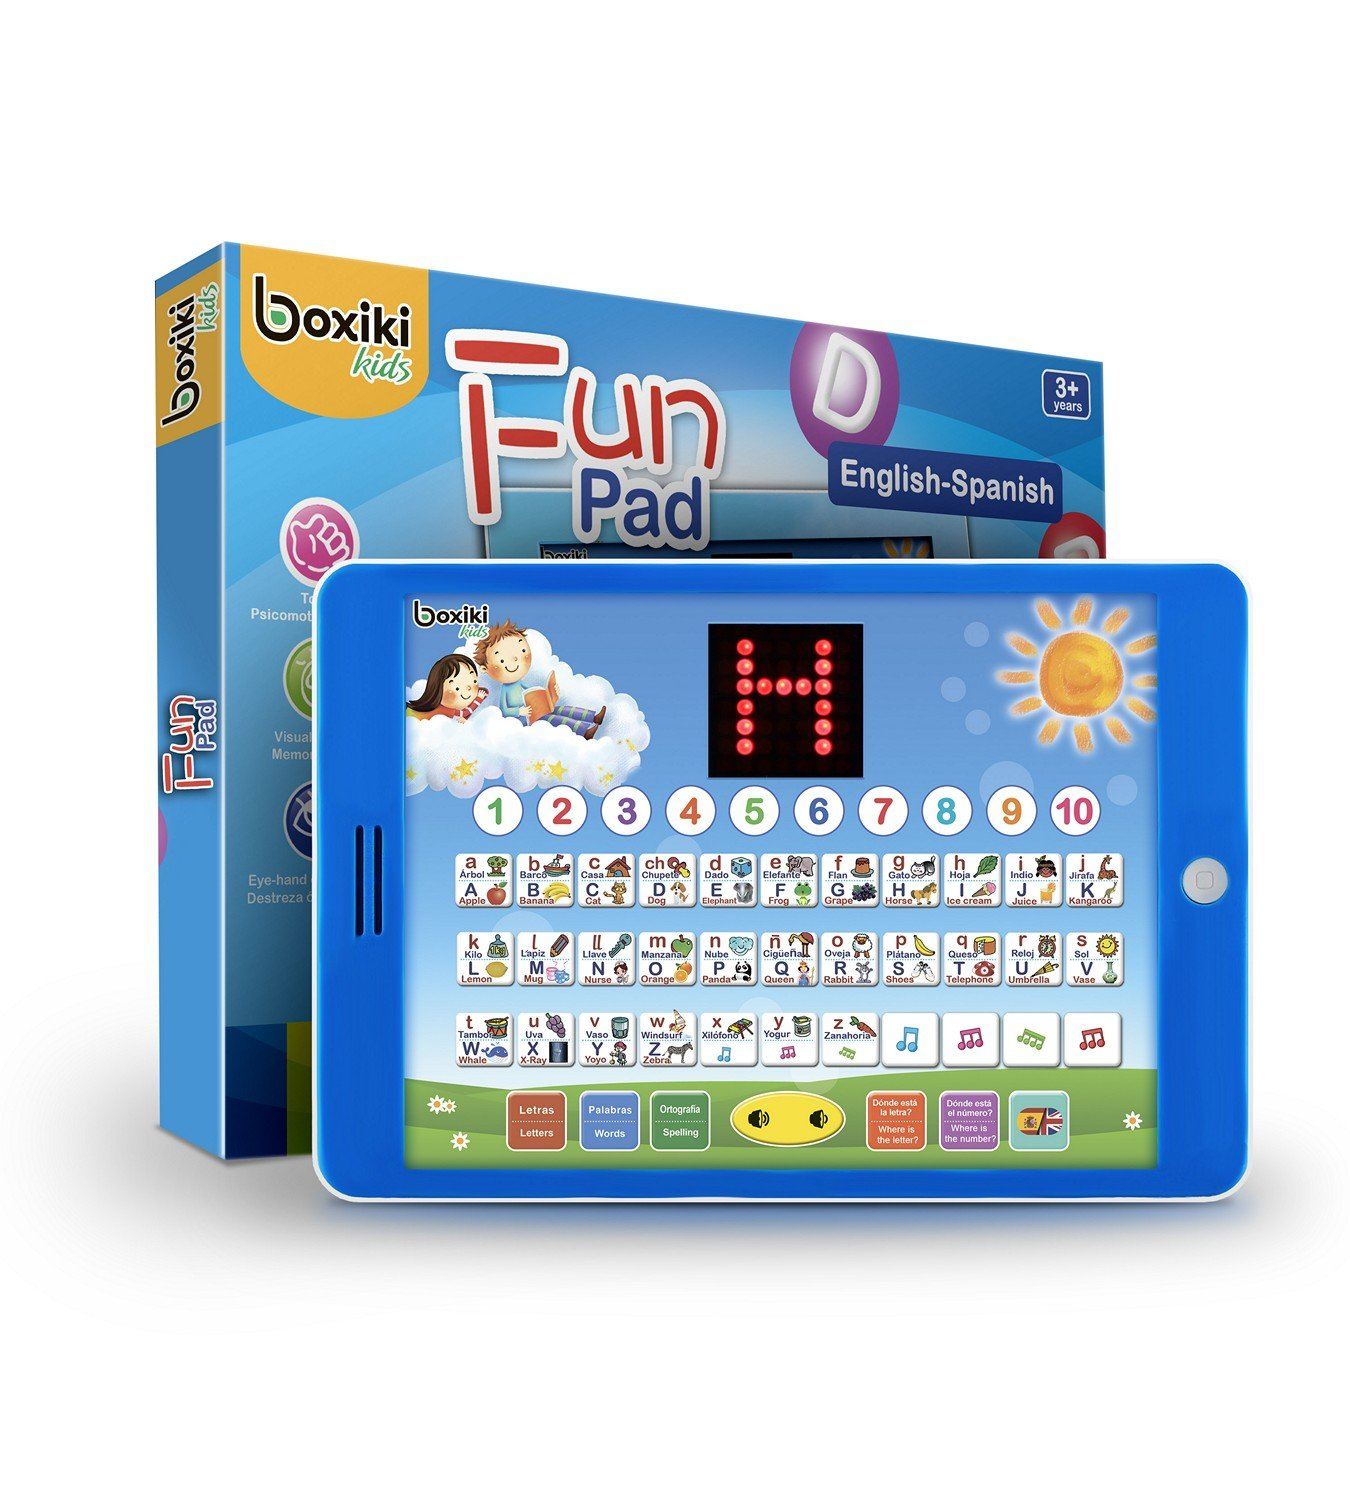 Spanish-English Tablet / Bilingual Educational Toy with LCD Screen Display. Touch-and-Teach Pad for Children. Learning Spanish and English. ABC Games, Spelling, ''Where is?'' Kids Game, Fun Melodies by Boxiki kids